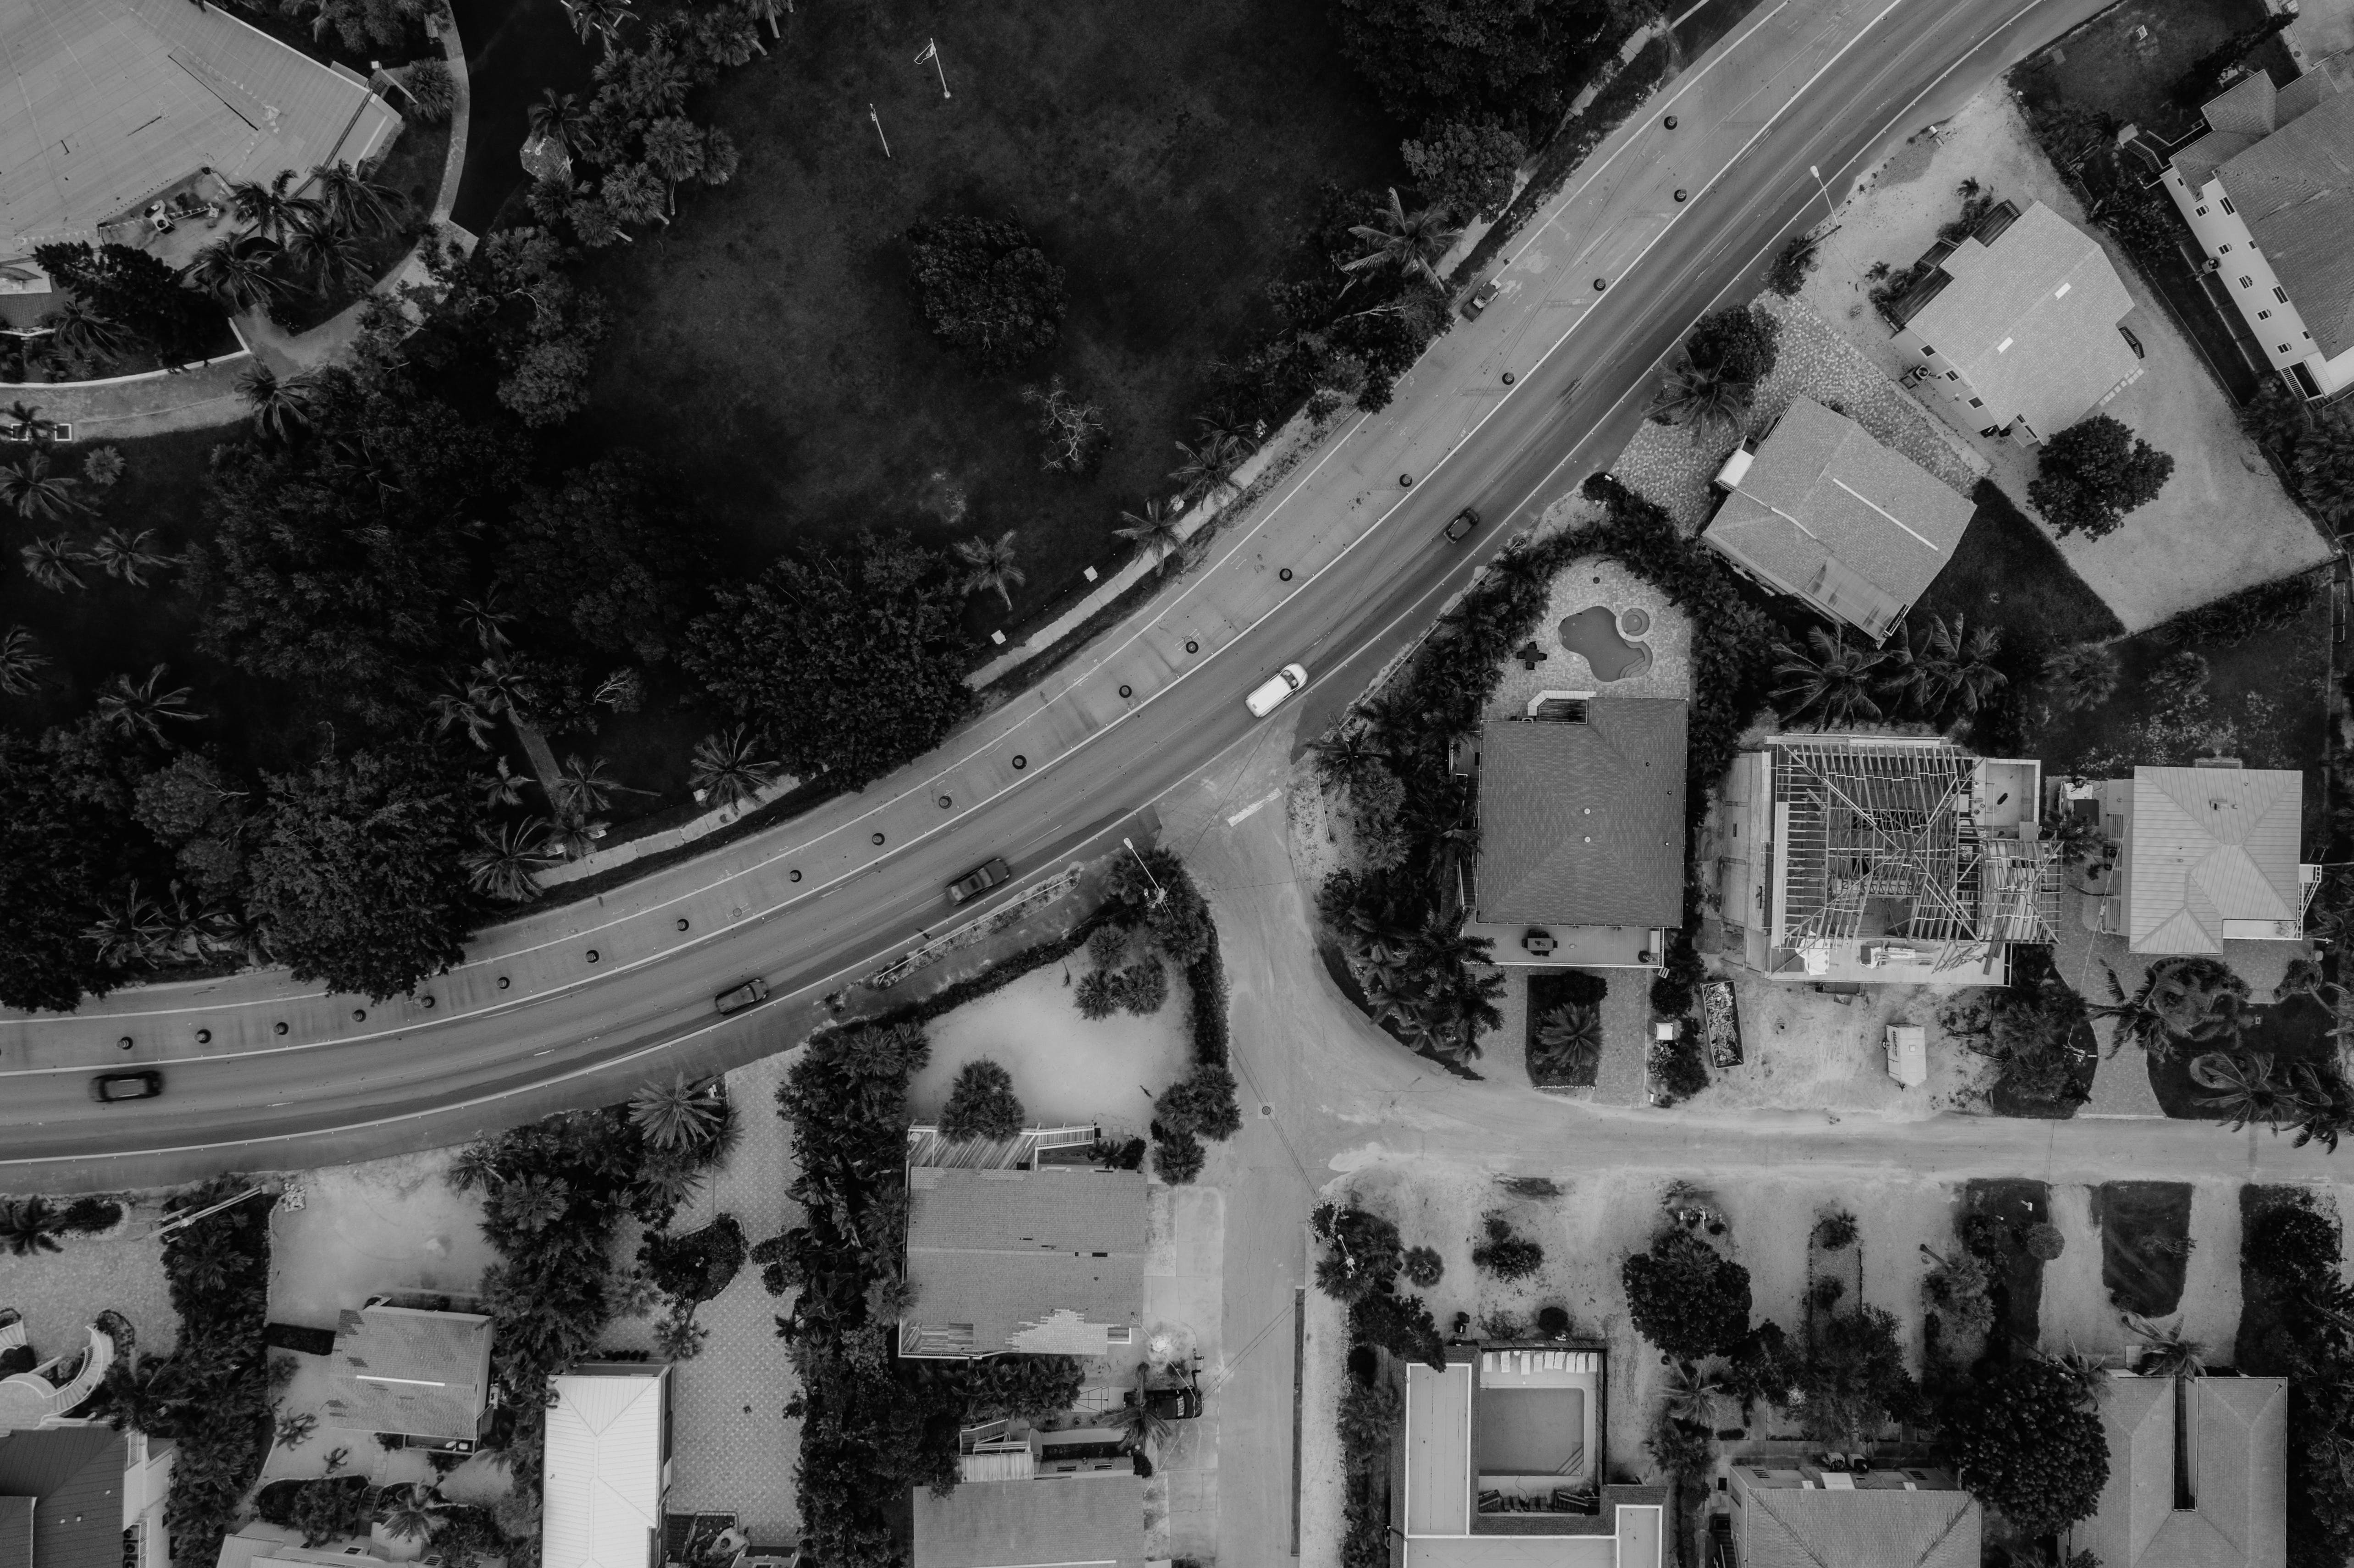 Bird's-view and Grayscale Photography of Car on Street